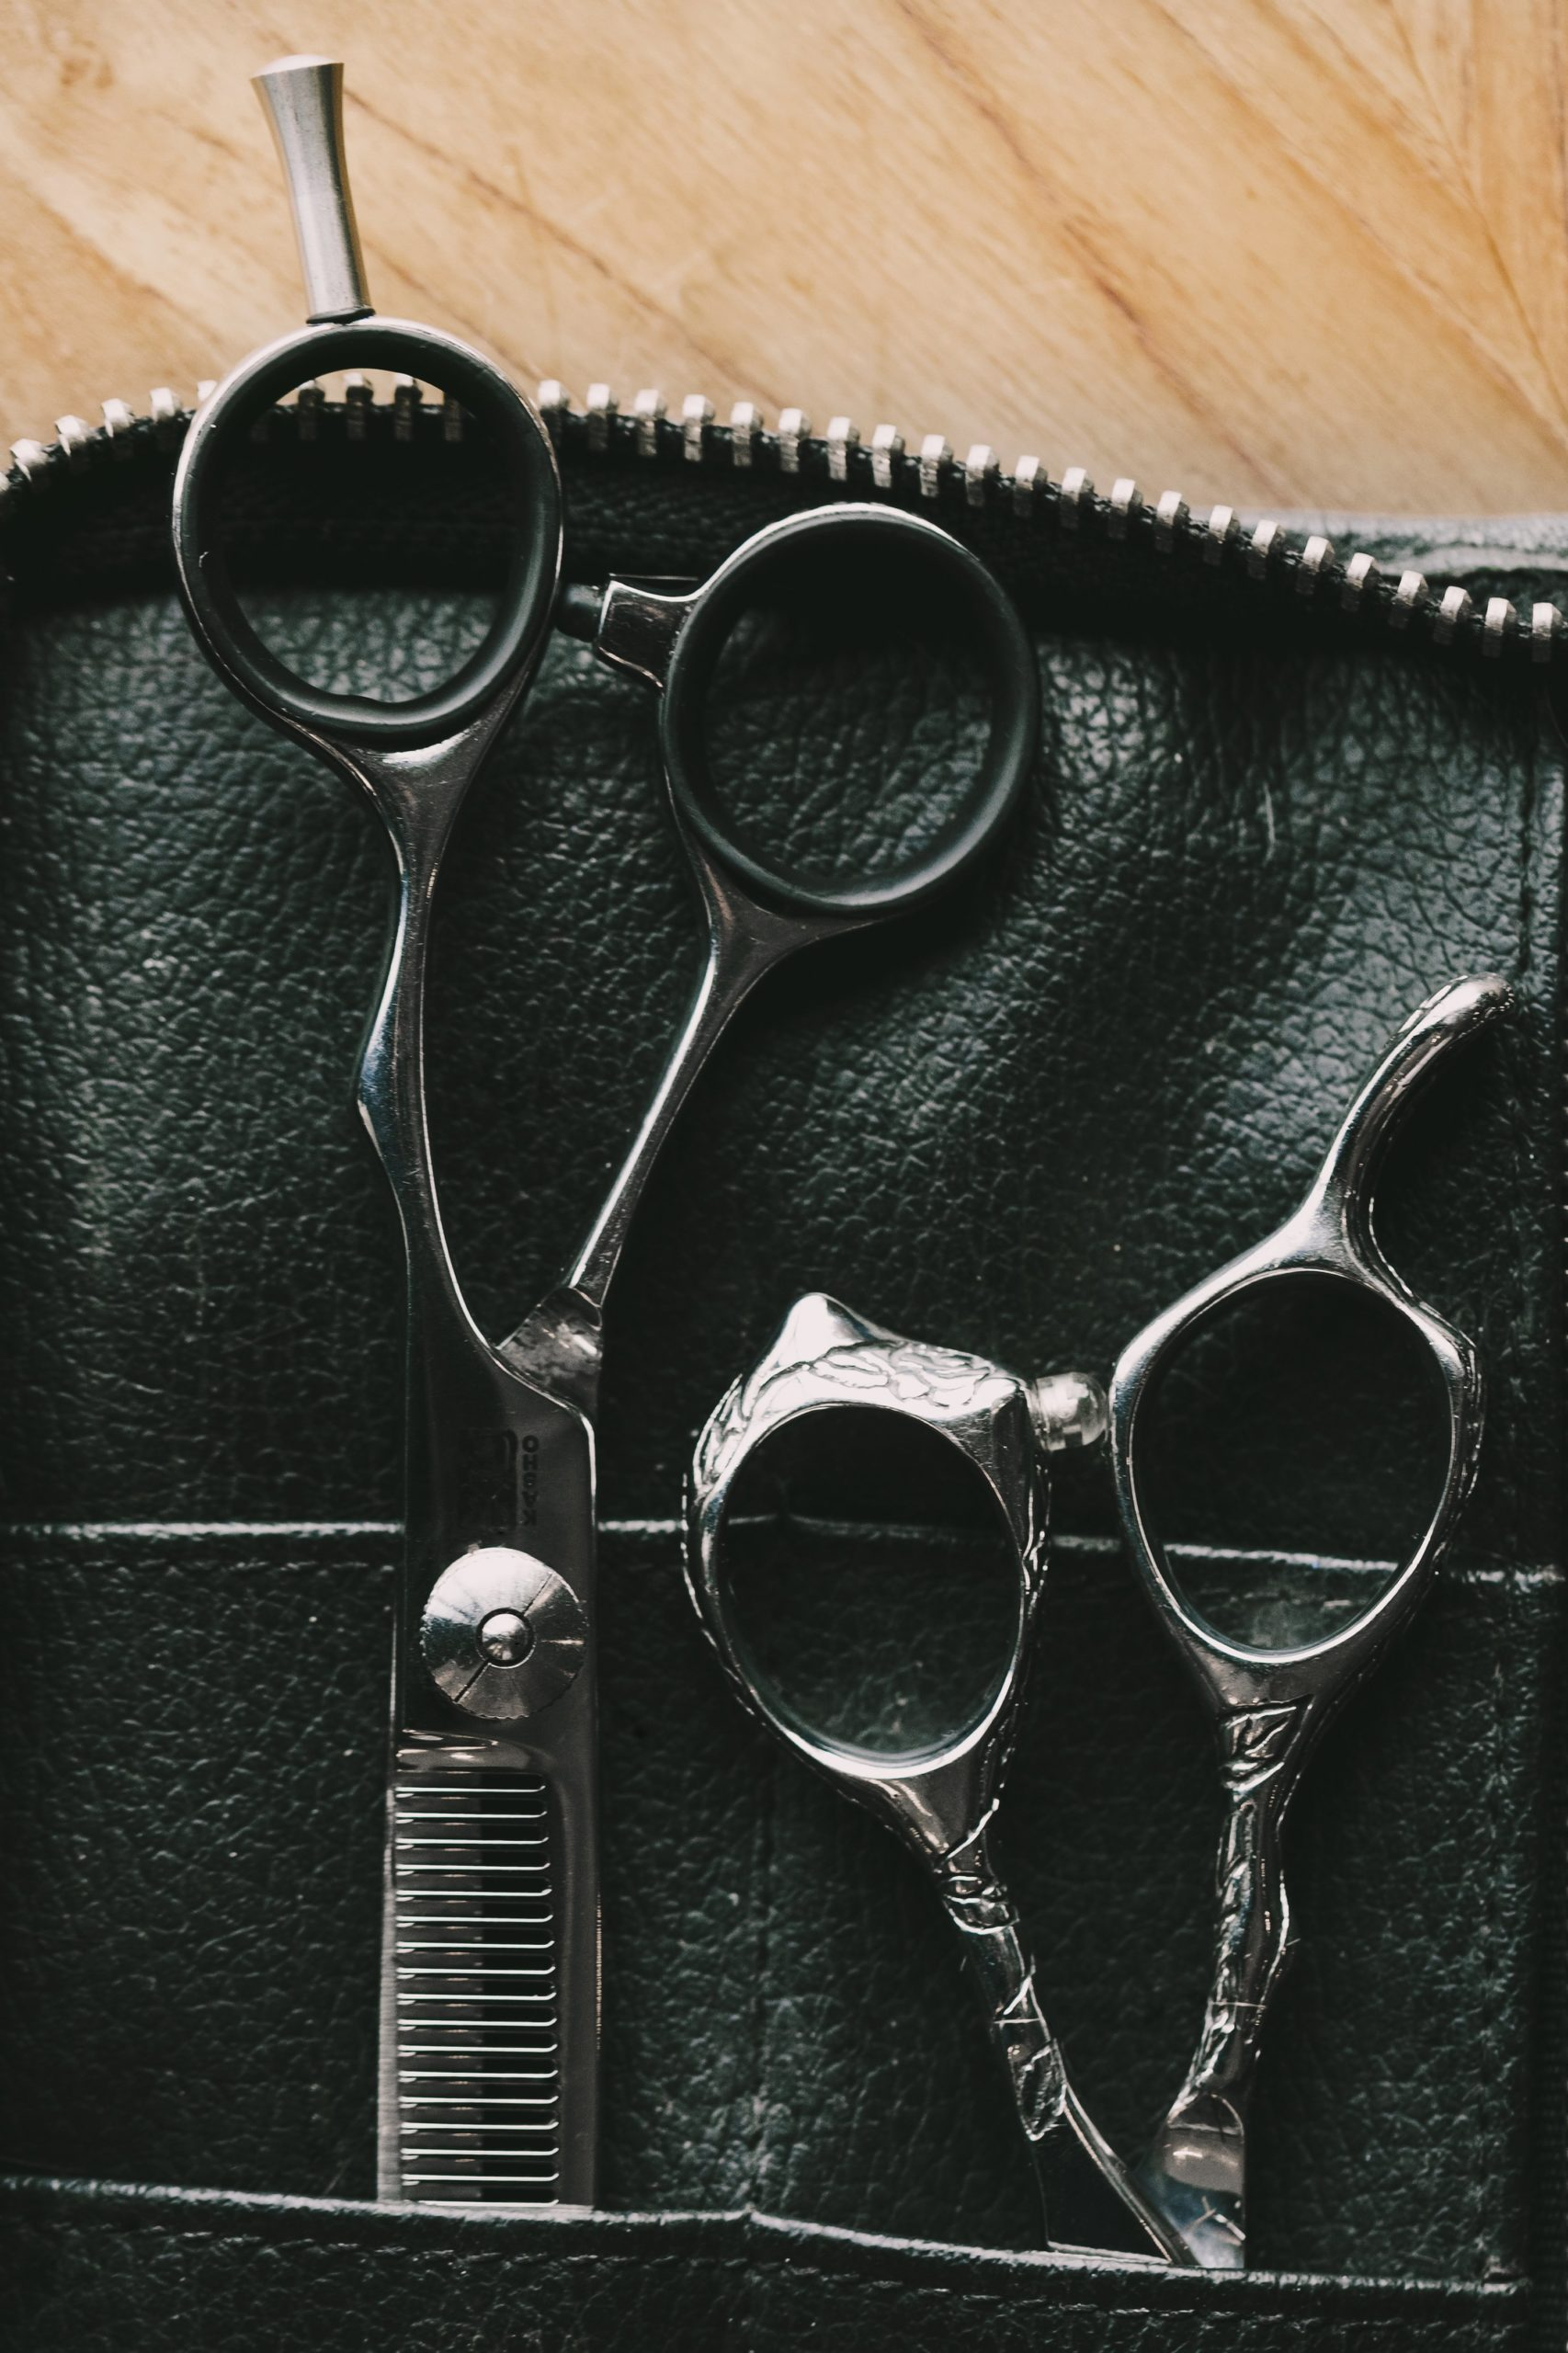 hair stylists tool case scaled